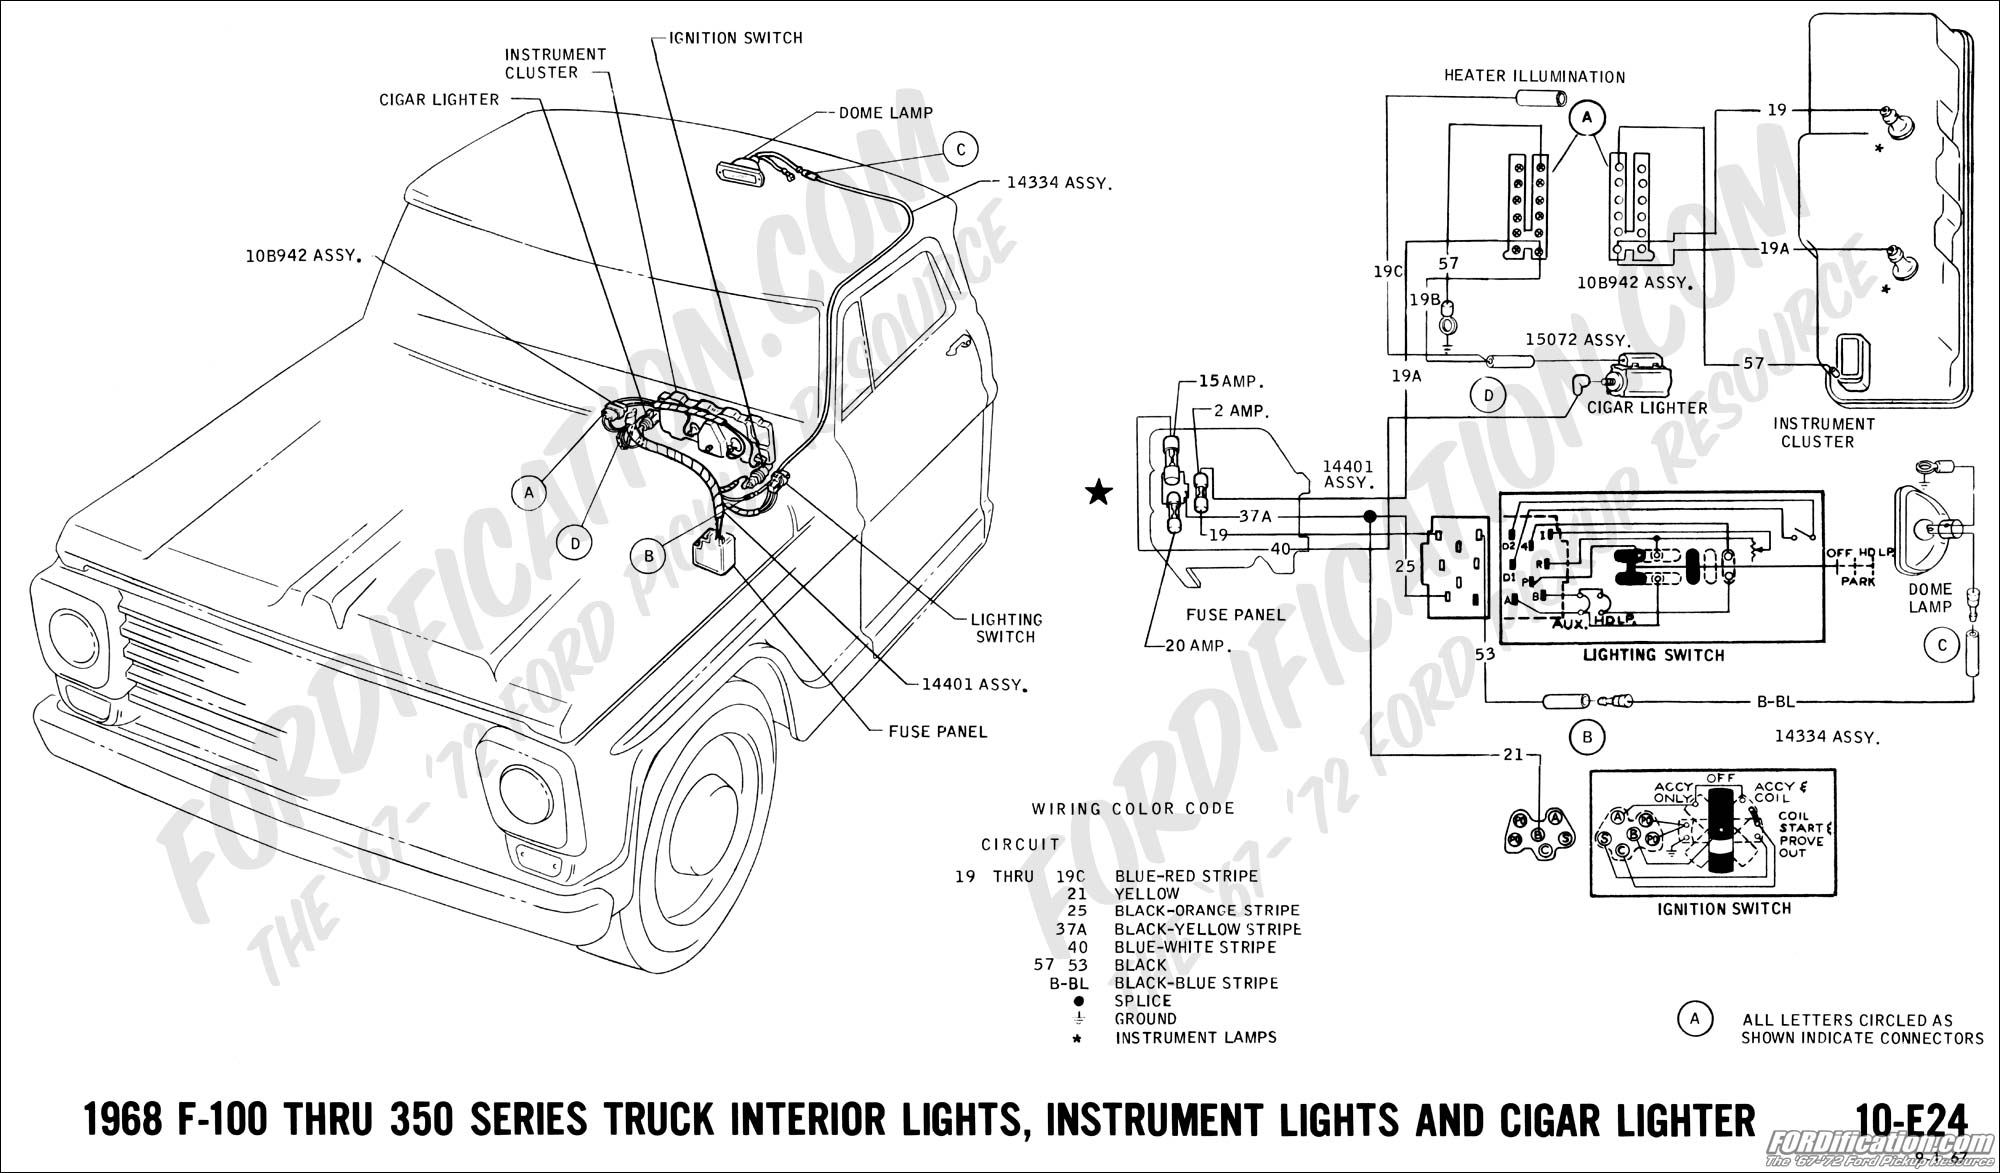 hight resolution of 1968 f 100 thru f 350 interior lights instrument lights and cigar lighter